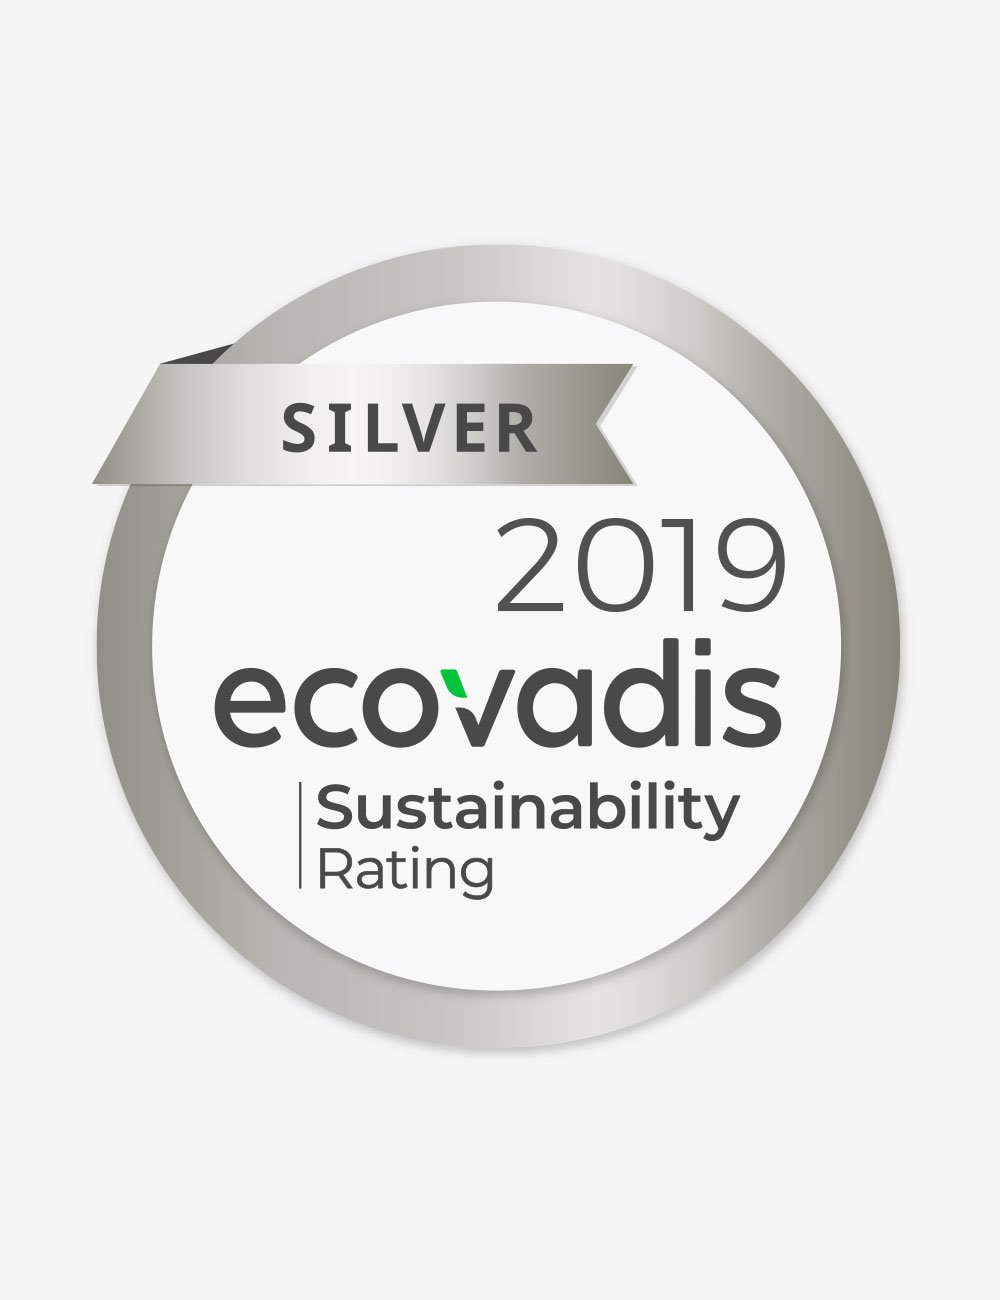 Immagine Ecovadis rating: silver medal